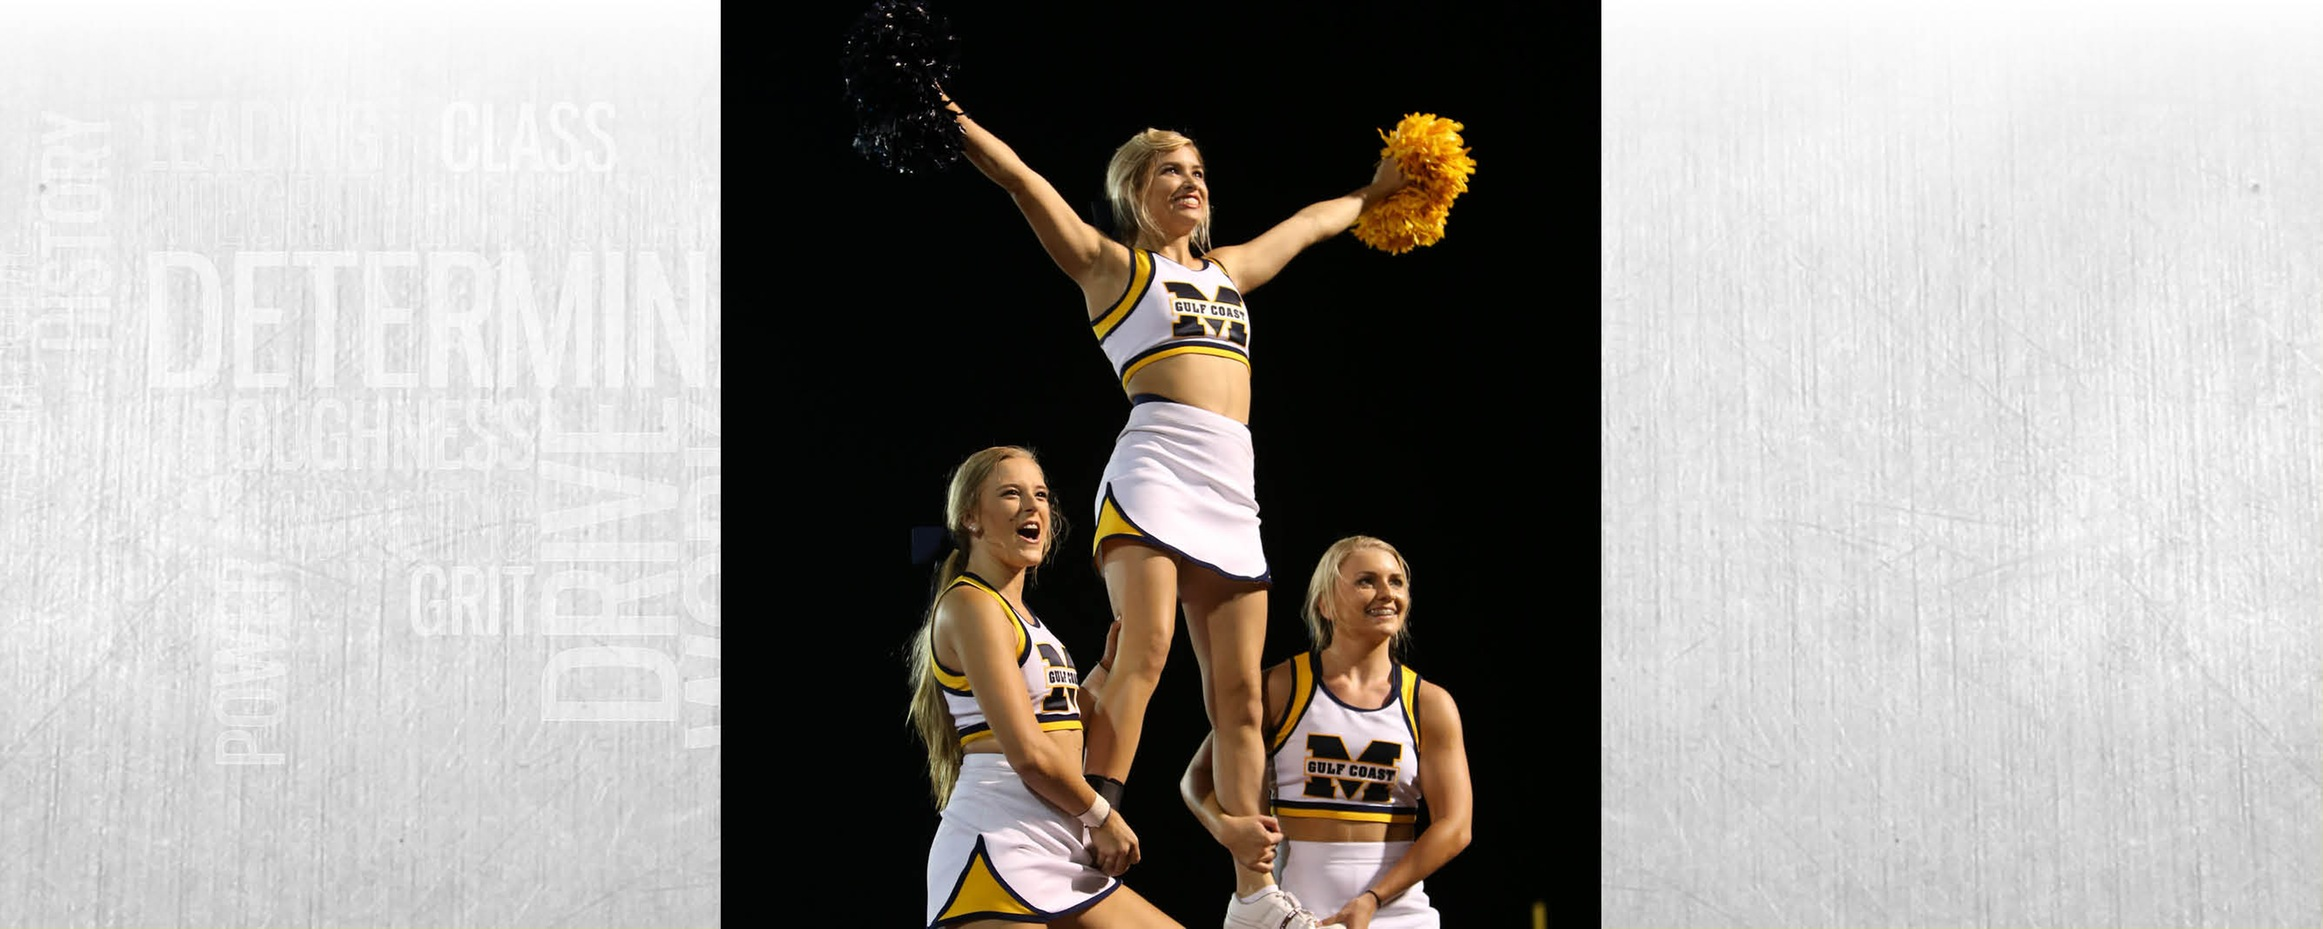 MGCCC offers College Cheer Prep Clinics